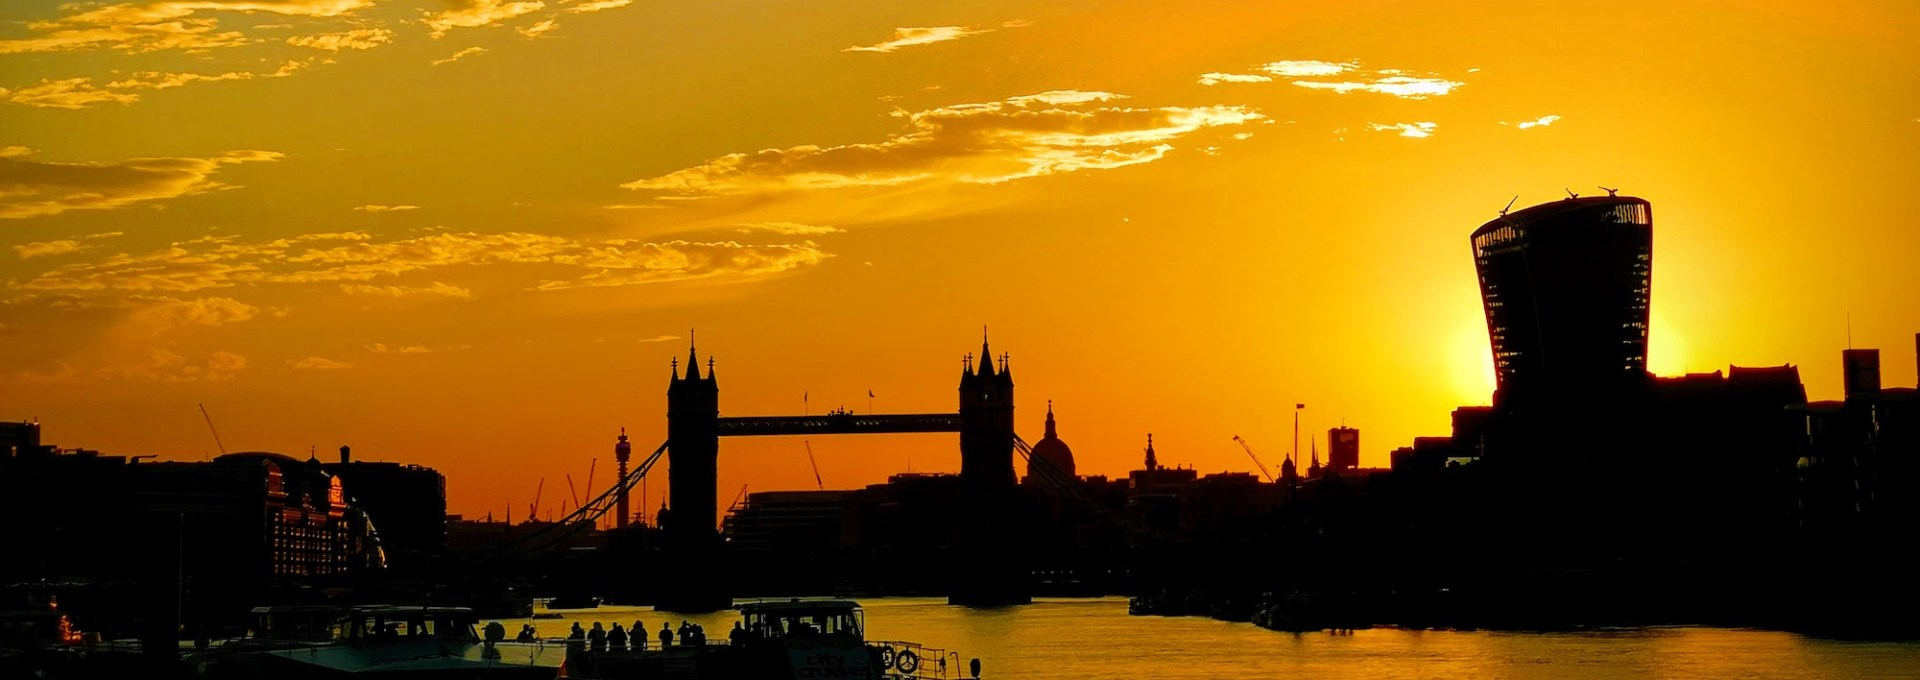 View of Tower of London and the city at sunset